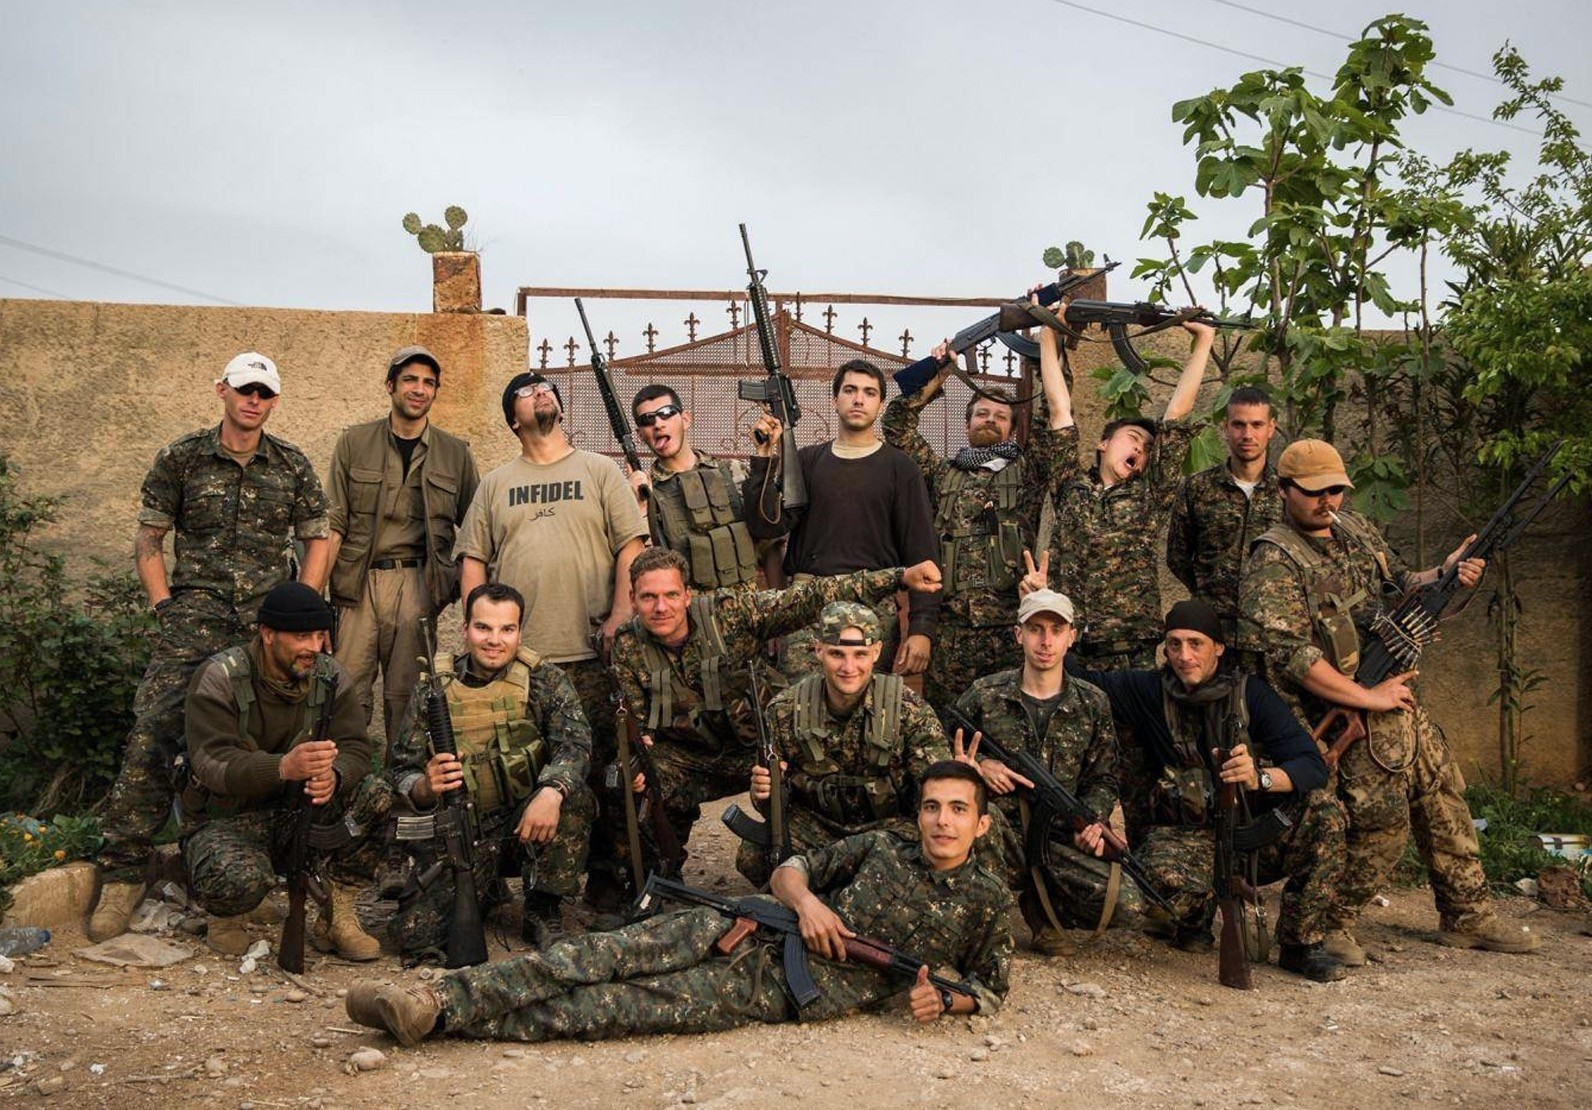 A group of foreign fighters, with YPG terrorists, pose for a photo on the outskirts of the northwestern Syrian town of Tal Tamr, April 16, 2015.